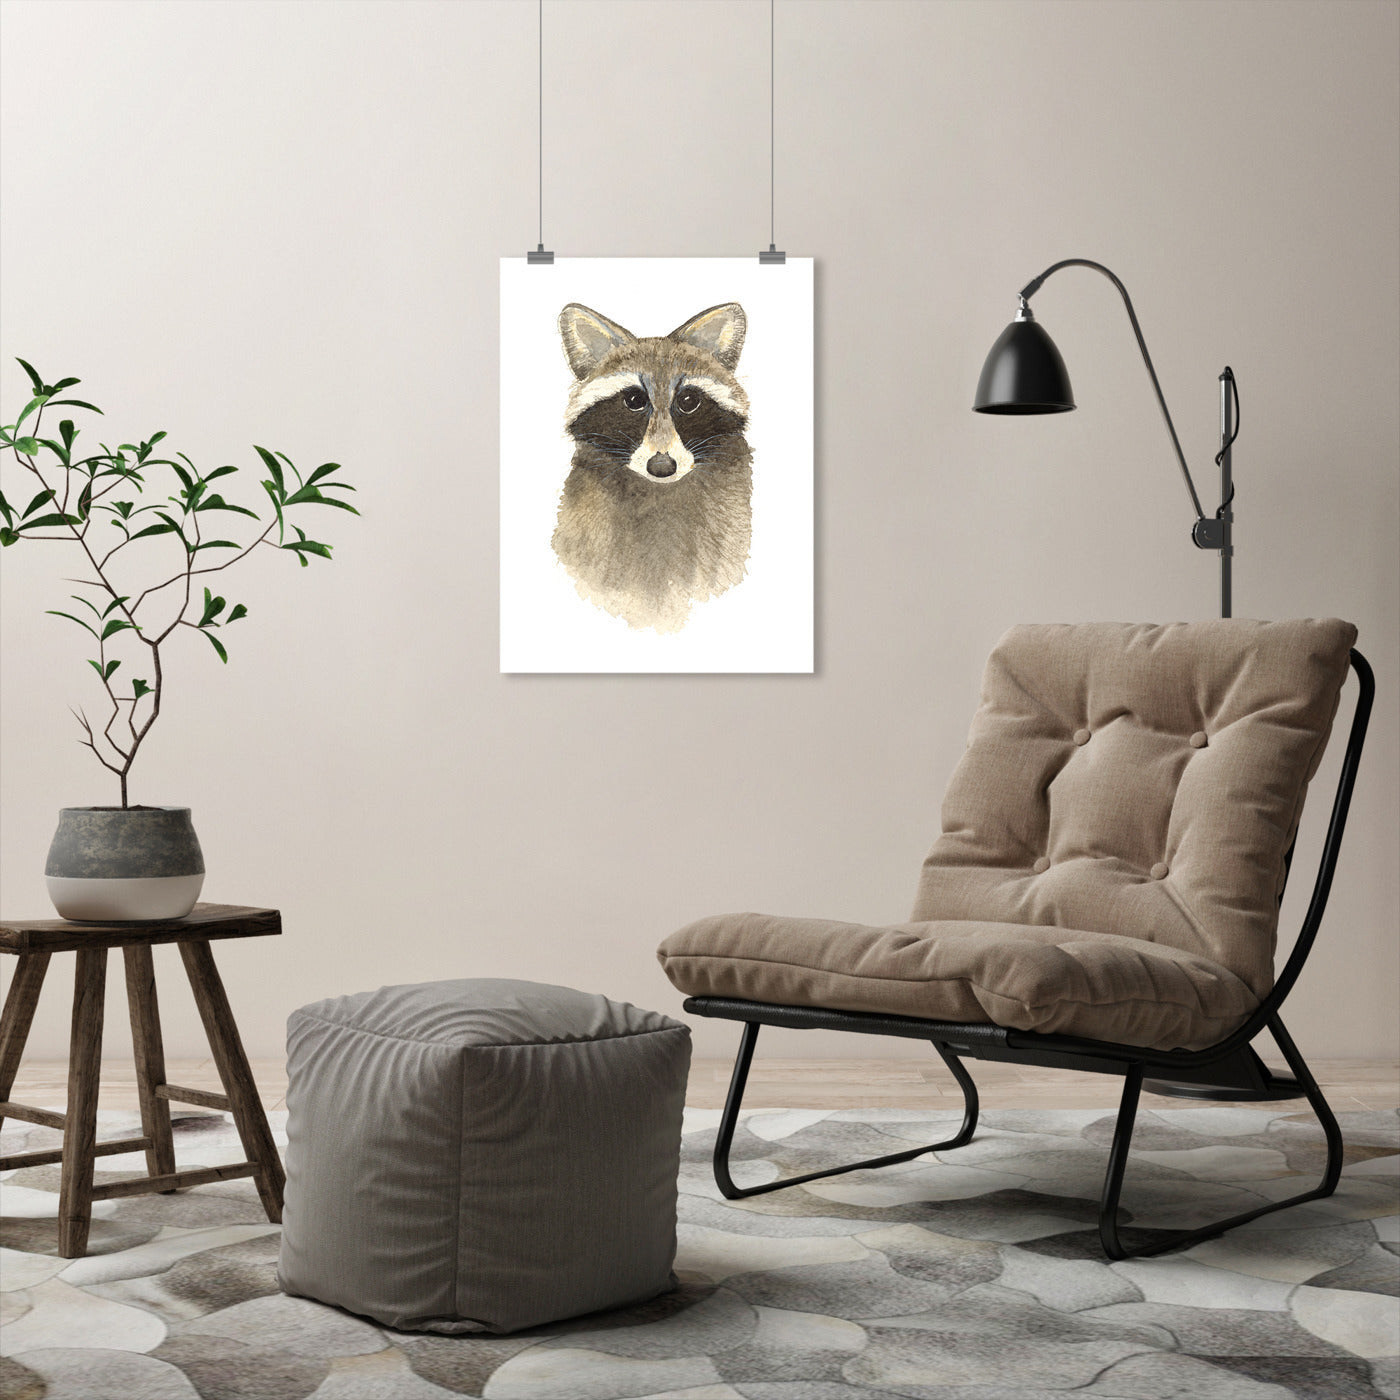 Raccoon by Cami Monet - Art Print - Americanflat